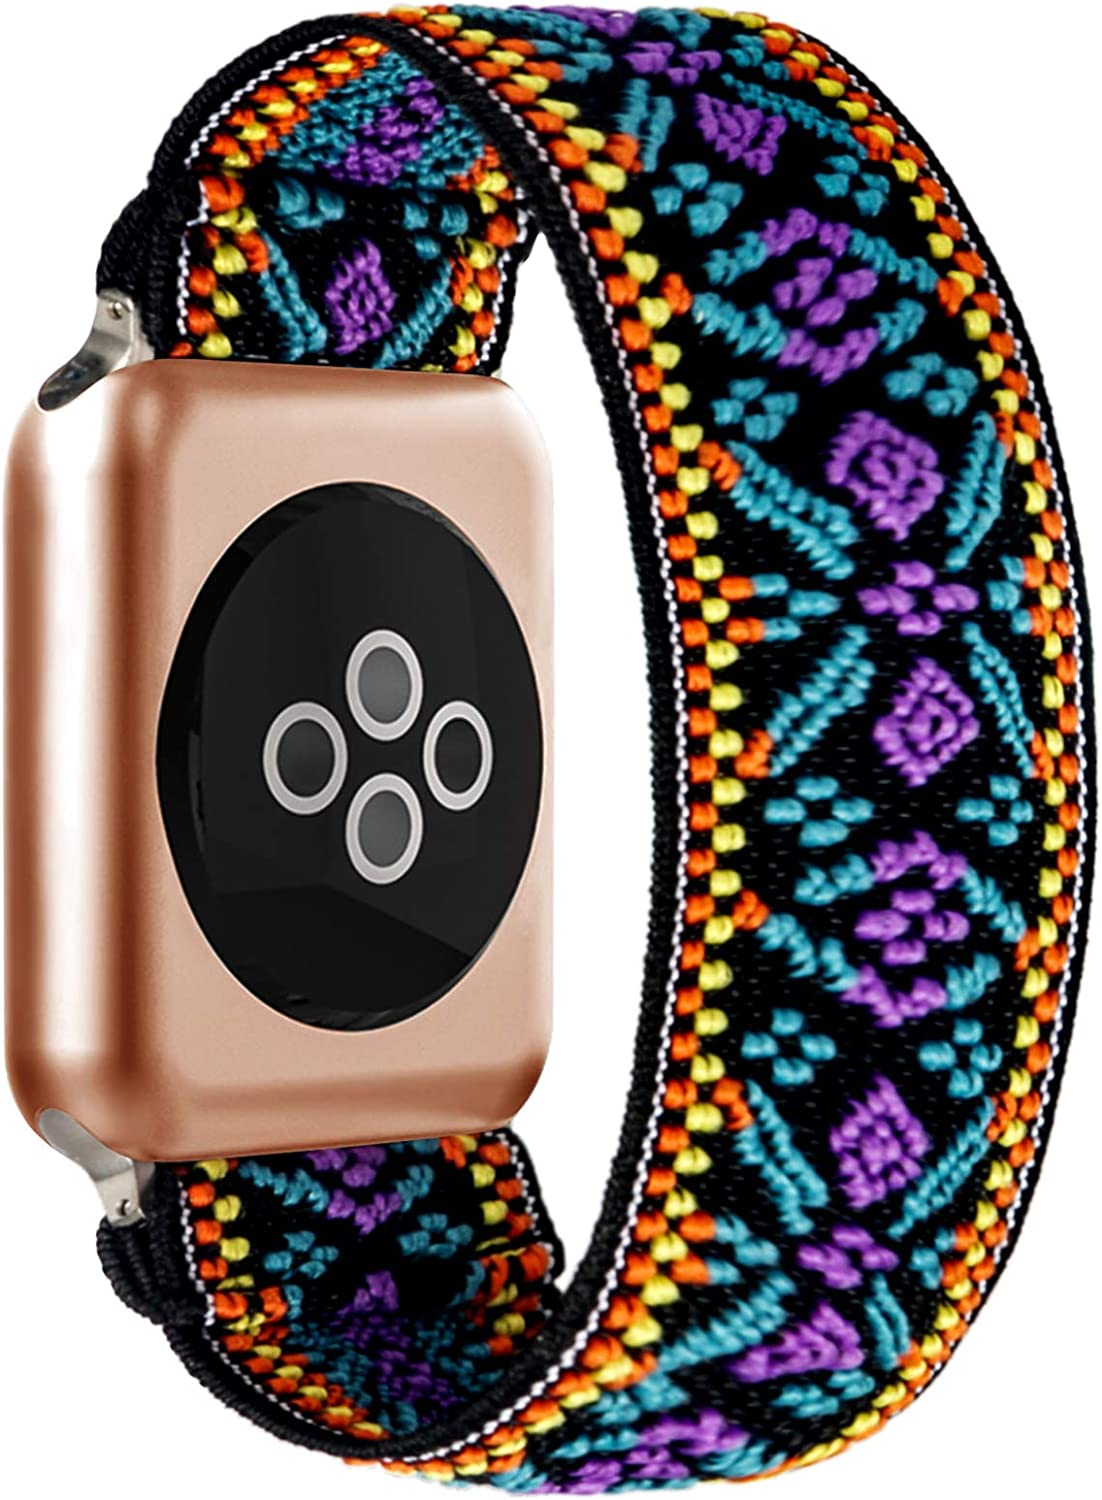 BMBEAR Stretchy Strap Loop Compatible with Apple Watch Band 38mm 40mm iWatch Series 6/5/4/3/2/1 Boho Blue